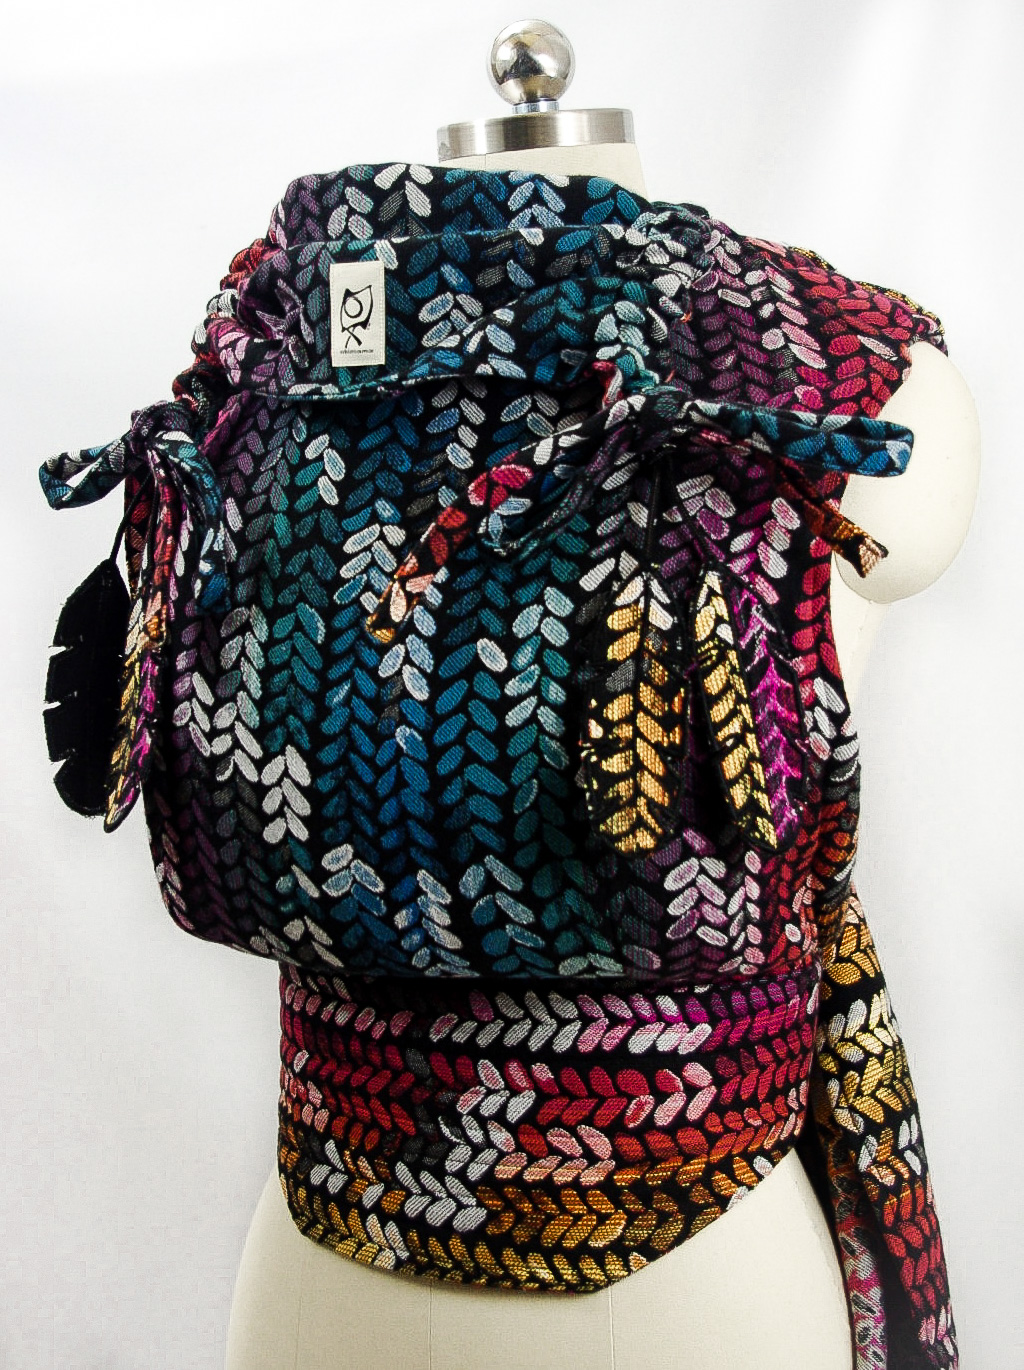 ObiMama Wrap Conversion Mei Tai Woven Wings' Winter Rainbow Stockinette